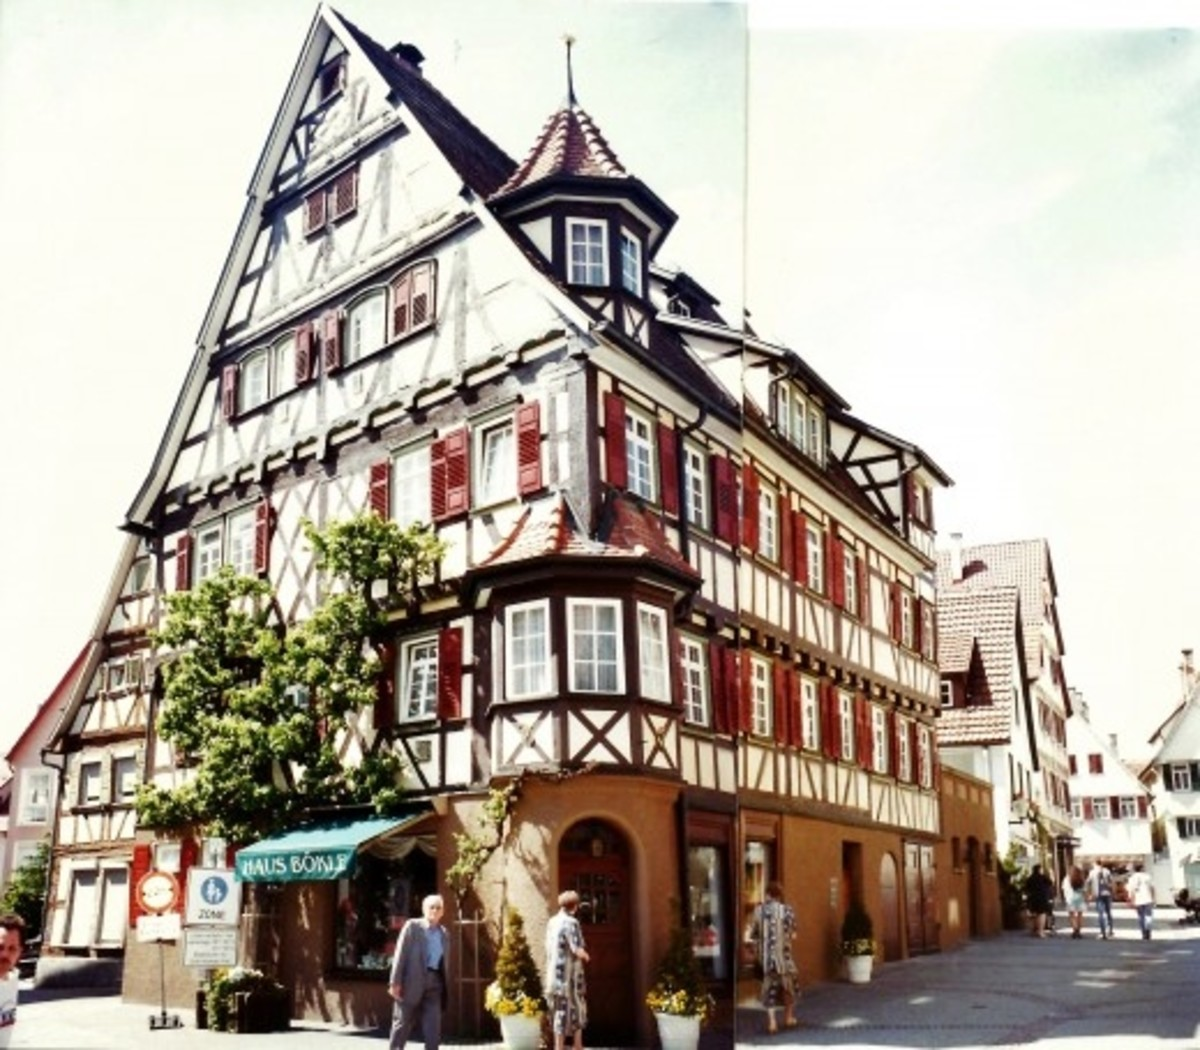 Two photos pieced together showing cross or half-timbered houses in Herrenberg